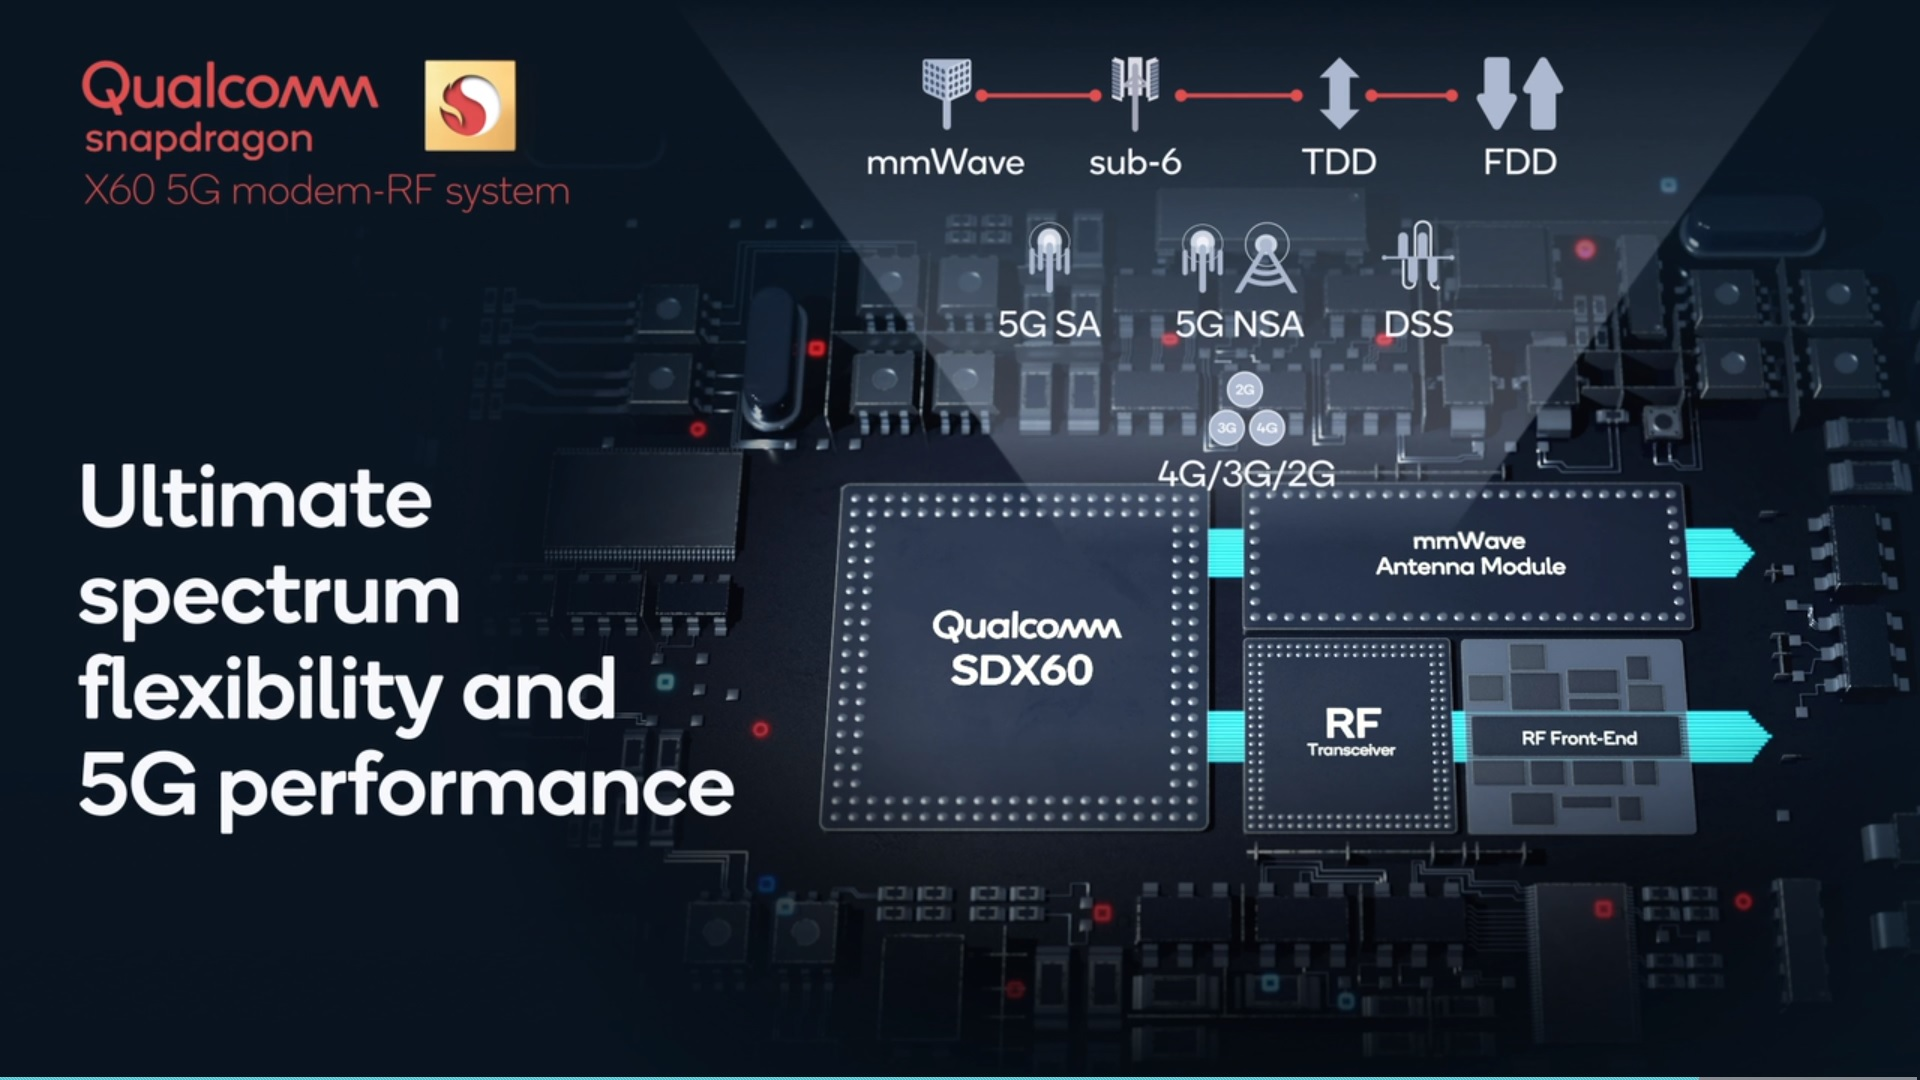 Qualcomm Snapdragon X60 modem 5G